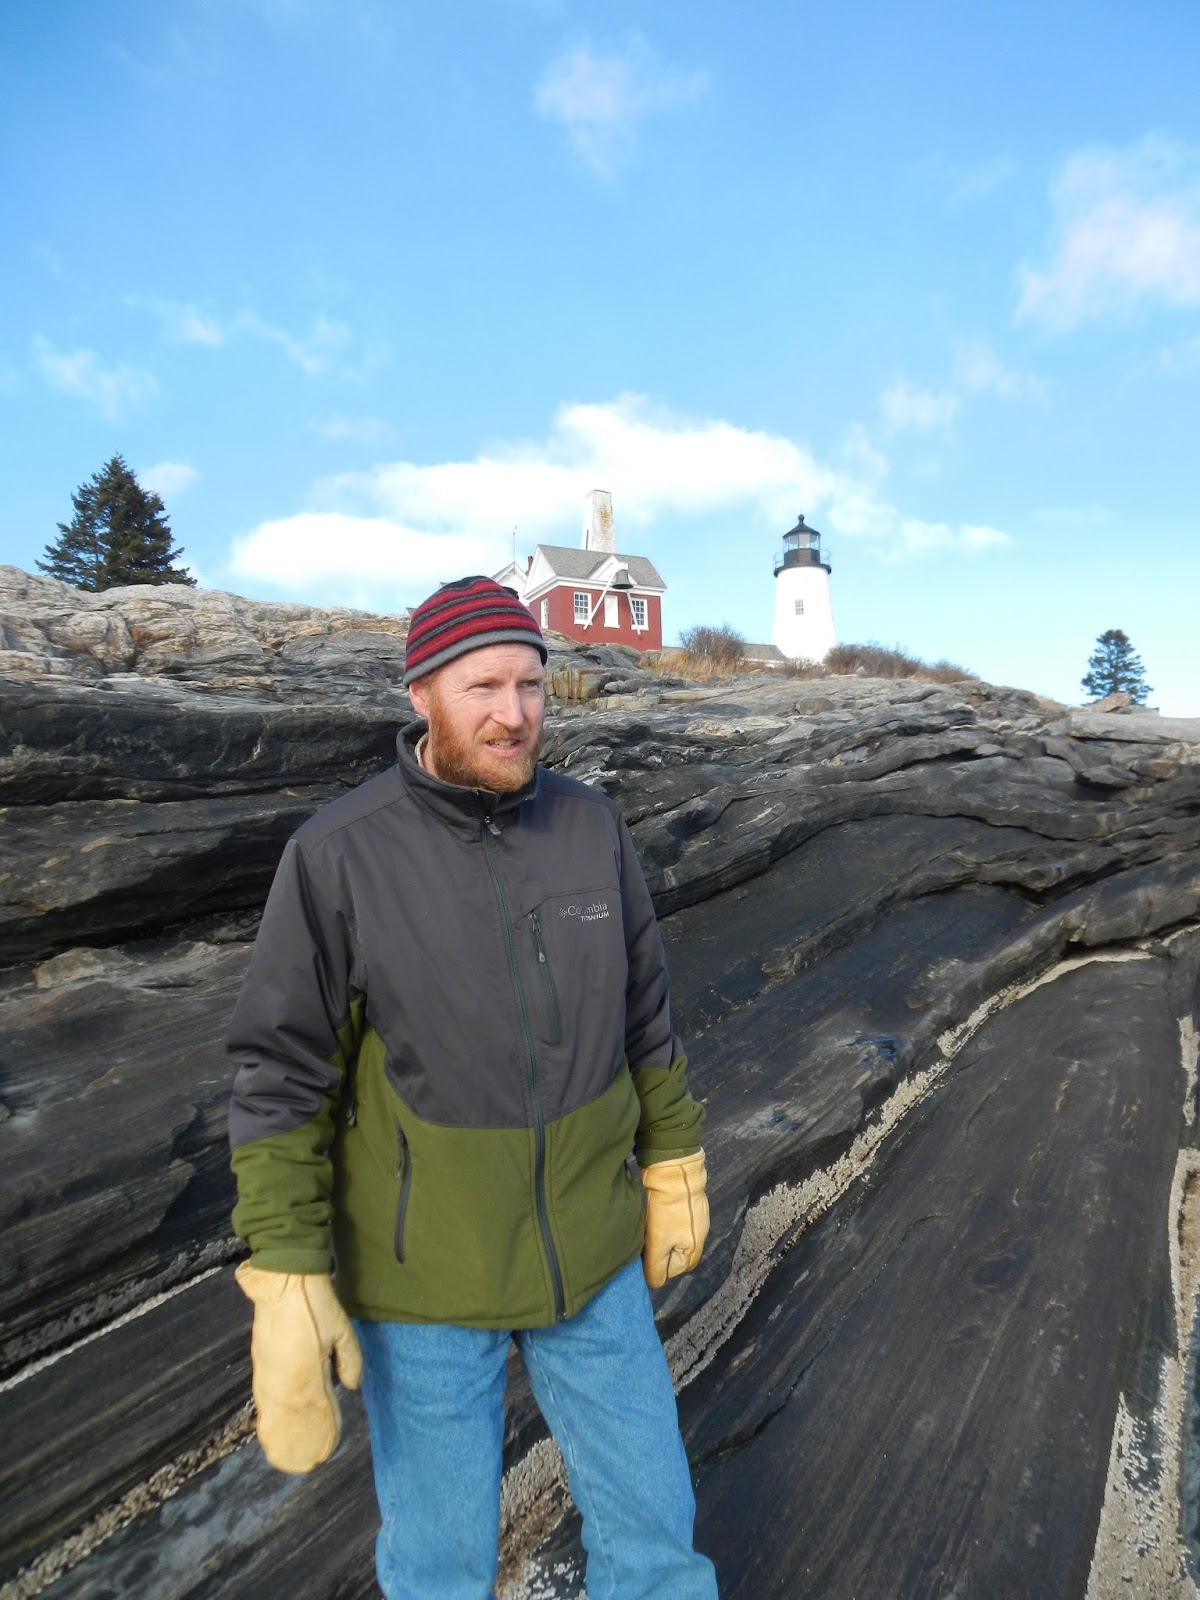 pemaquid girls Buoy bells chiming as he hauled in his lobster traps was a favorite sound—equal parts peaceful and melodic, and an indicator that he was safely close to harbor jim was so enamored with the sound that he and his wife, may, began creating their own wind chimes to capture it.